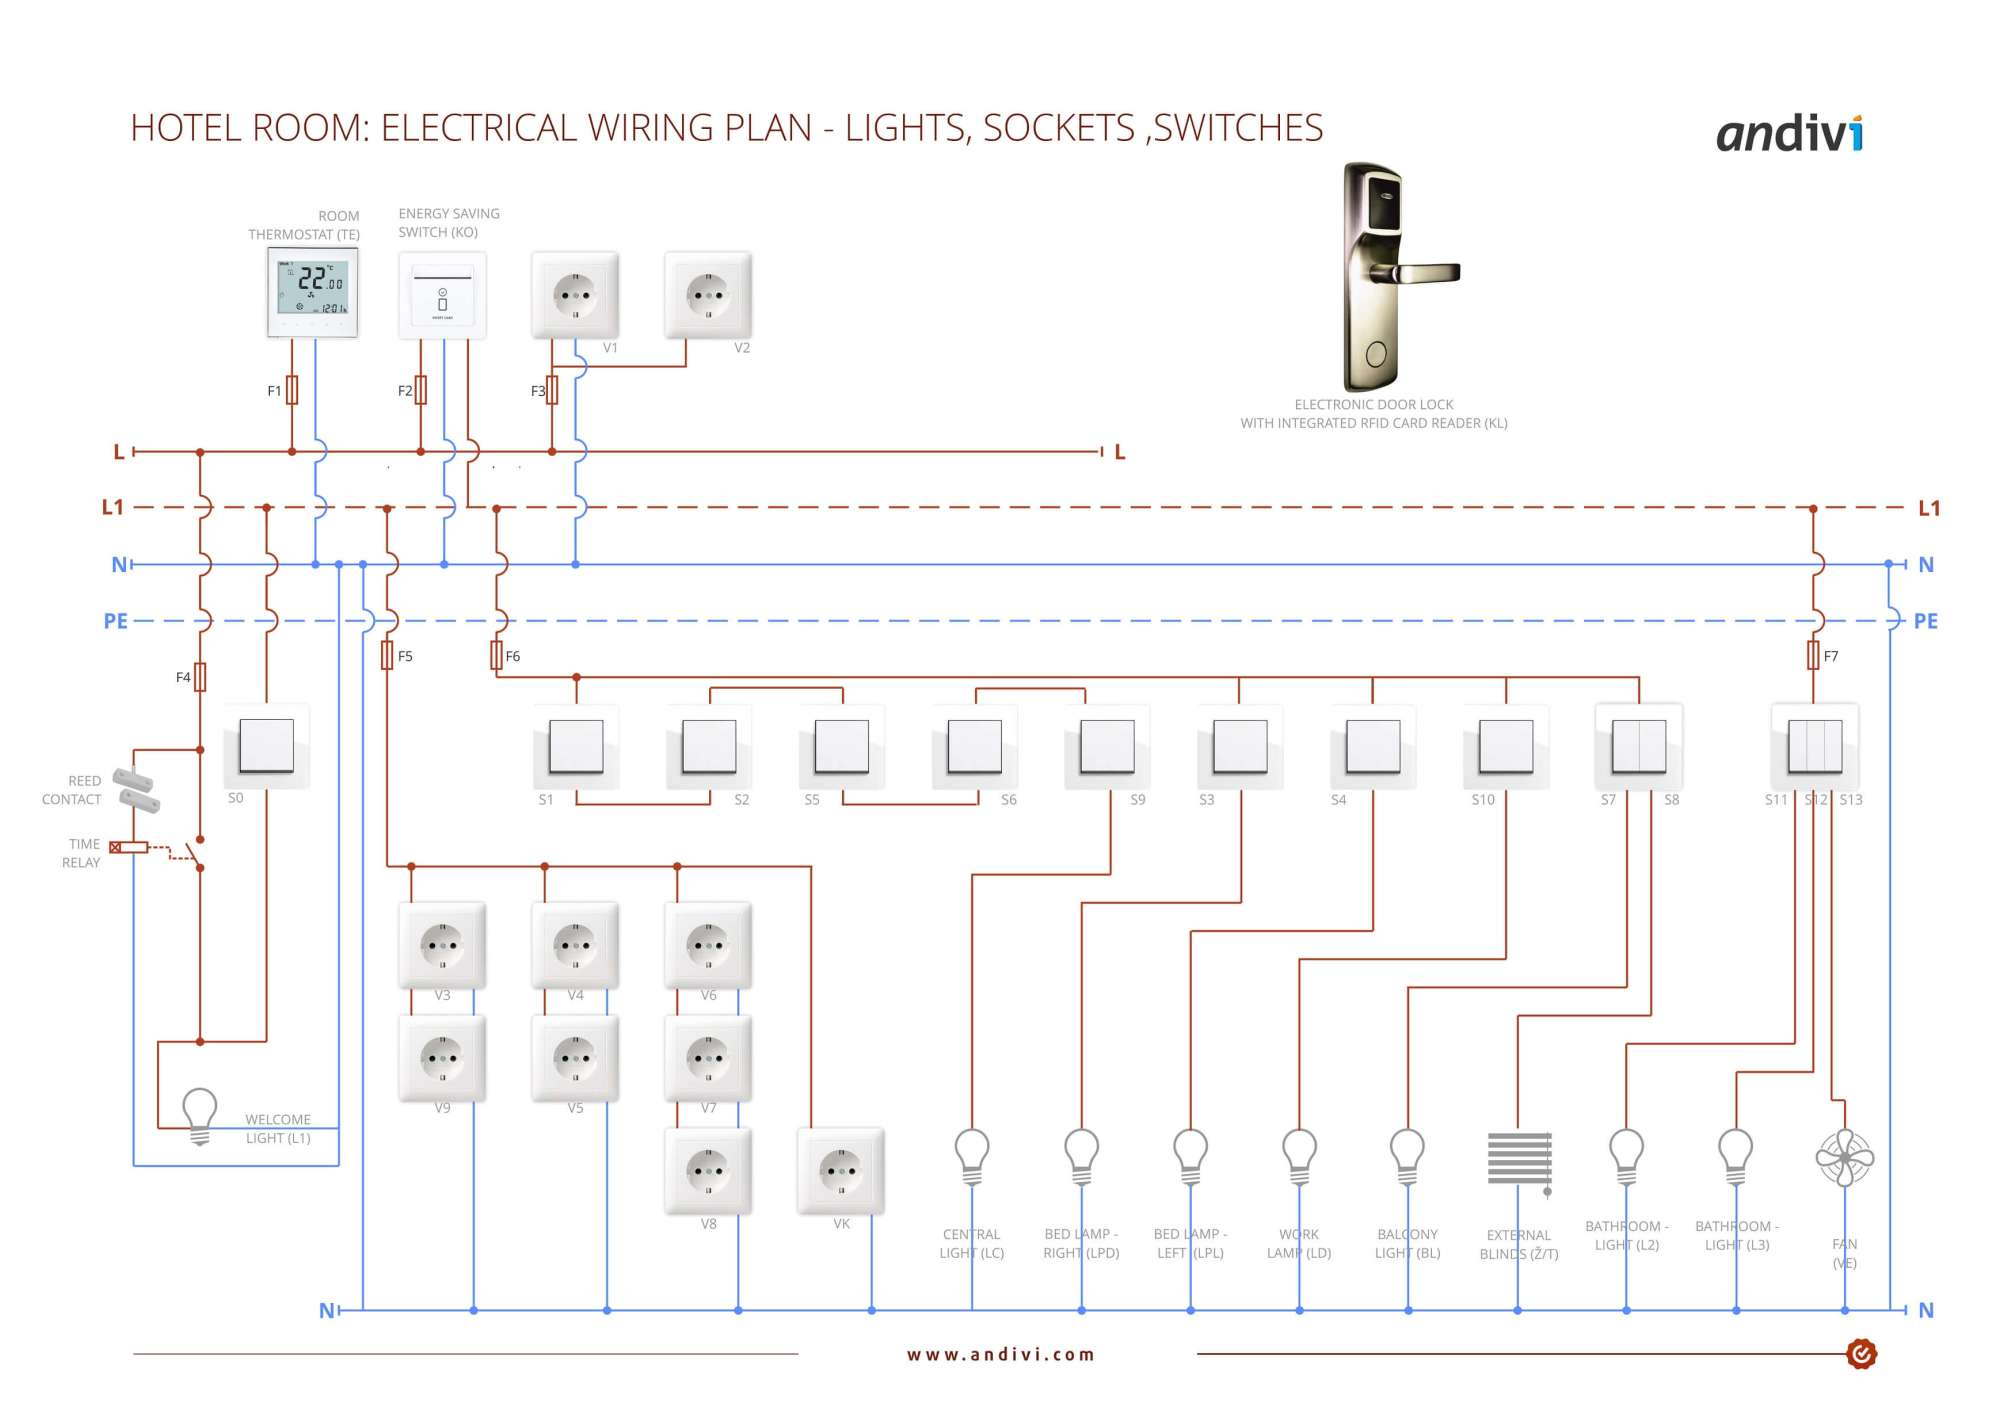 hight resolution of electrical wiring plan hotel room lights sockets switches electricity electrical circuits